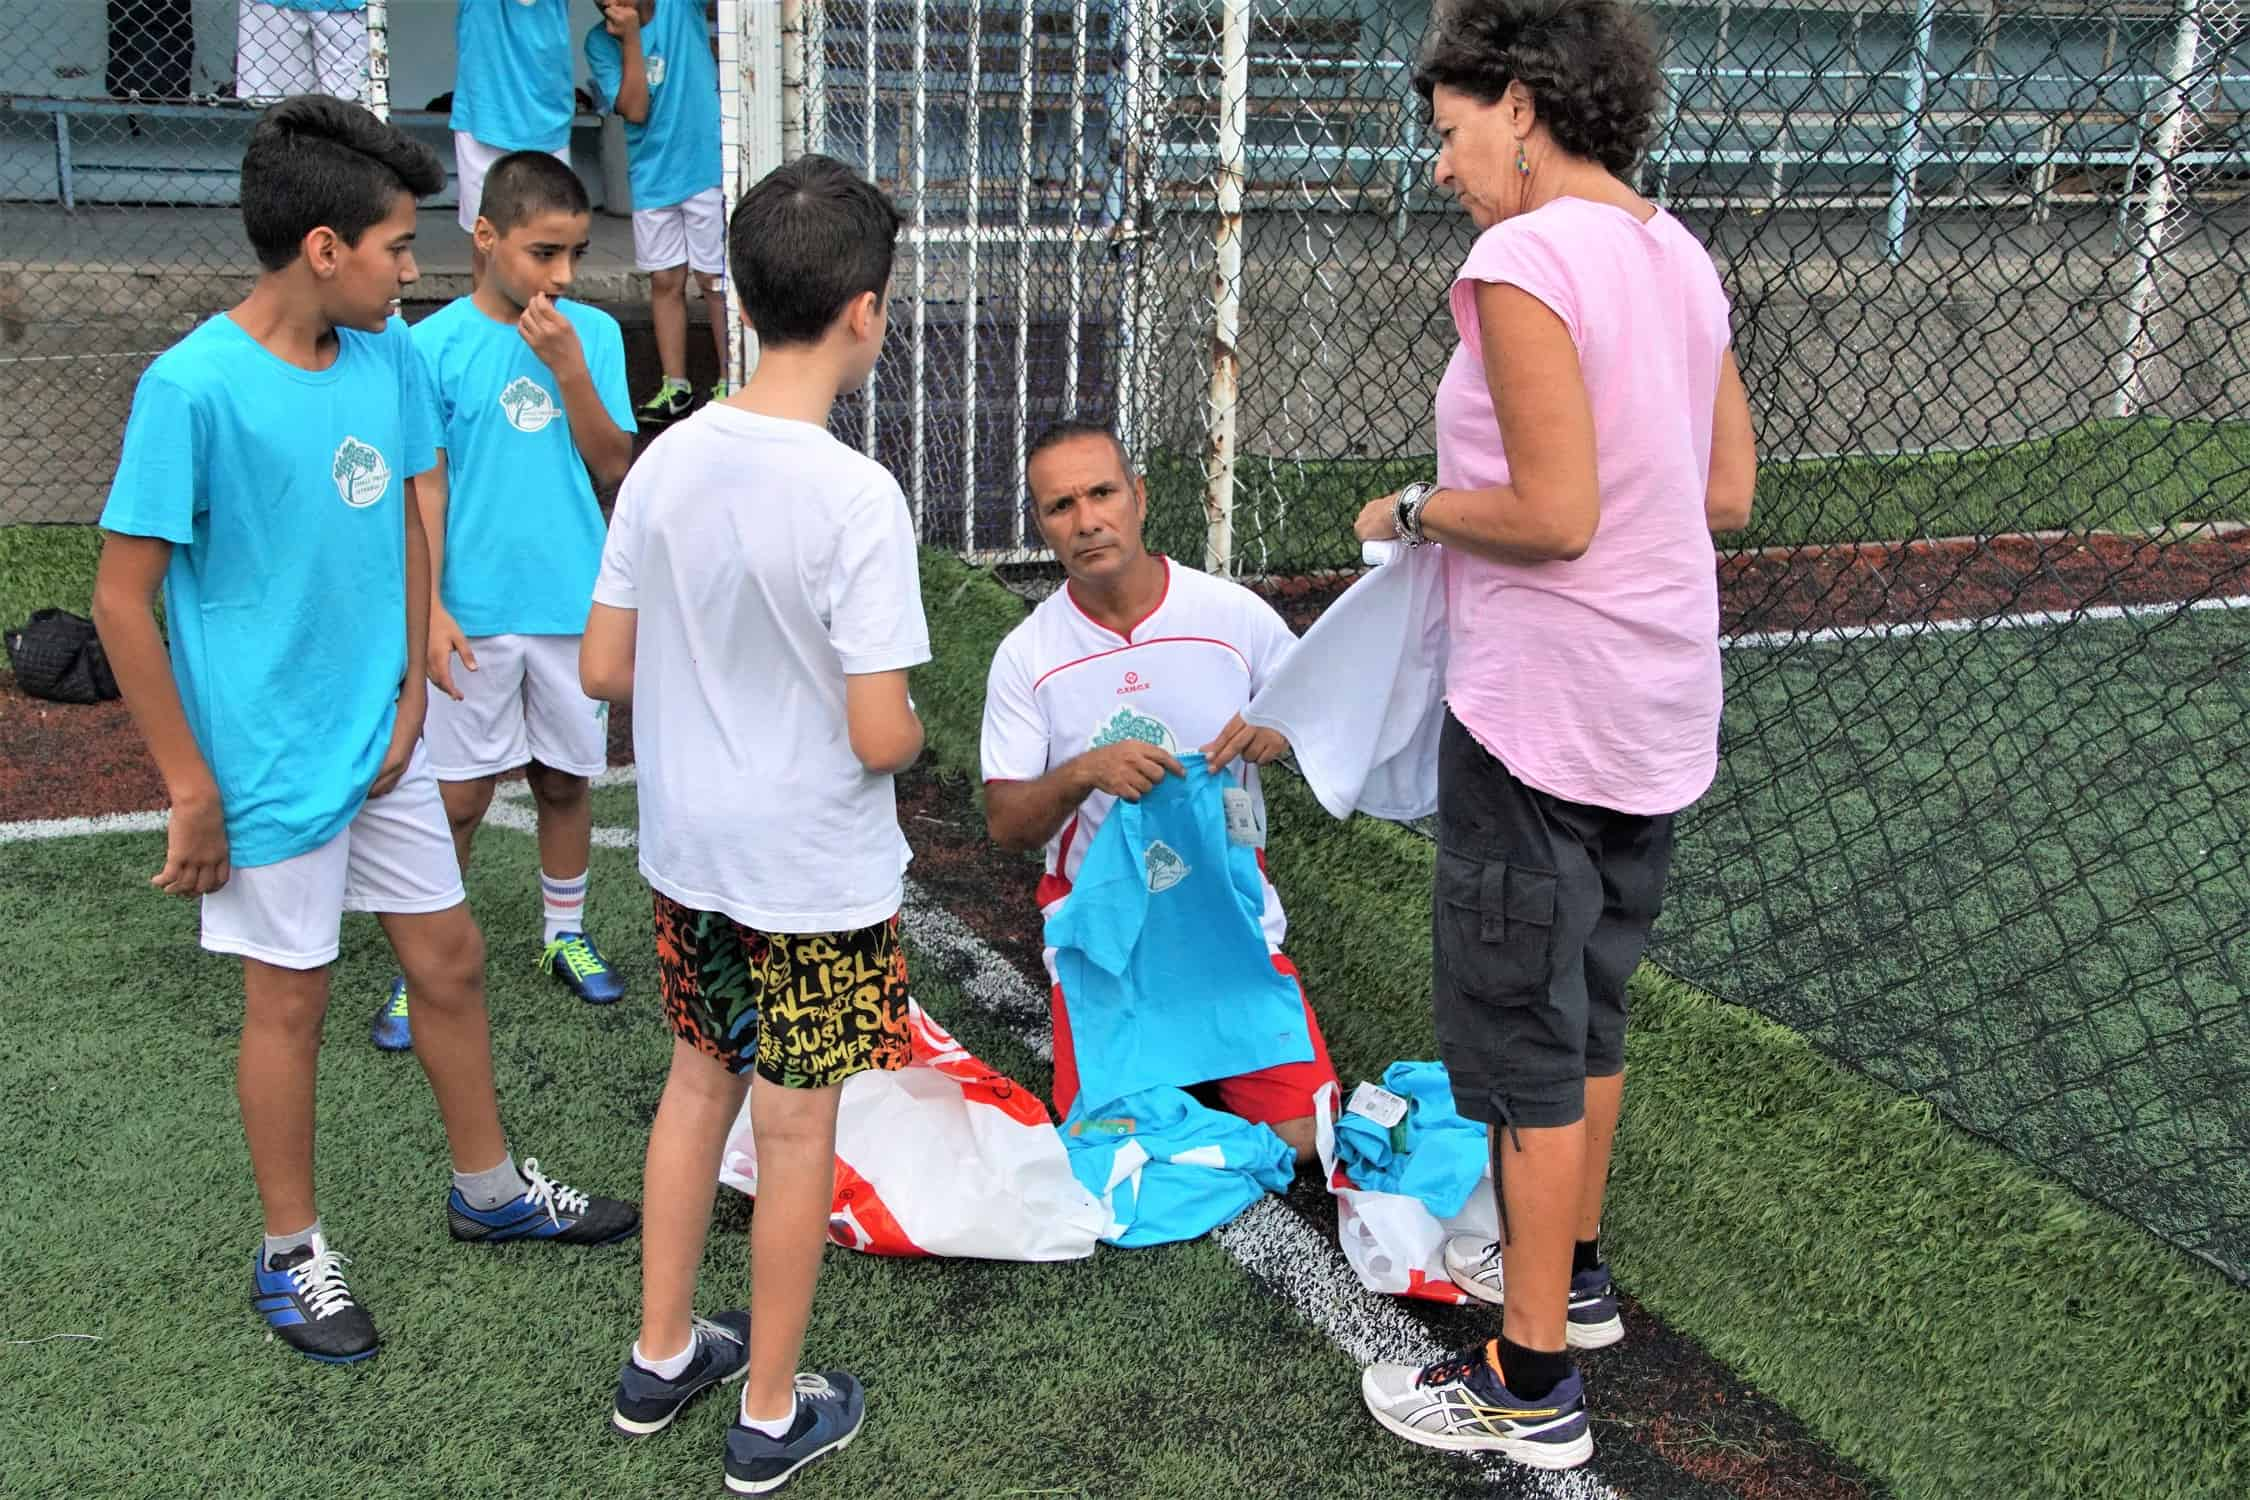 ahmad-julie-giving-football-tshirts-refugee-childfen